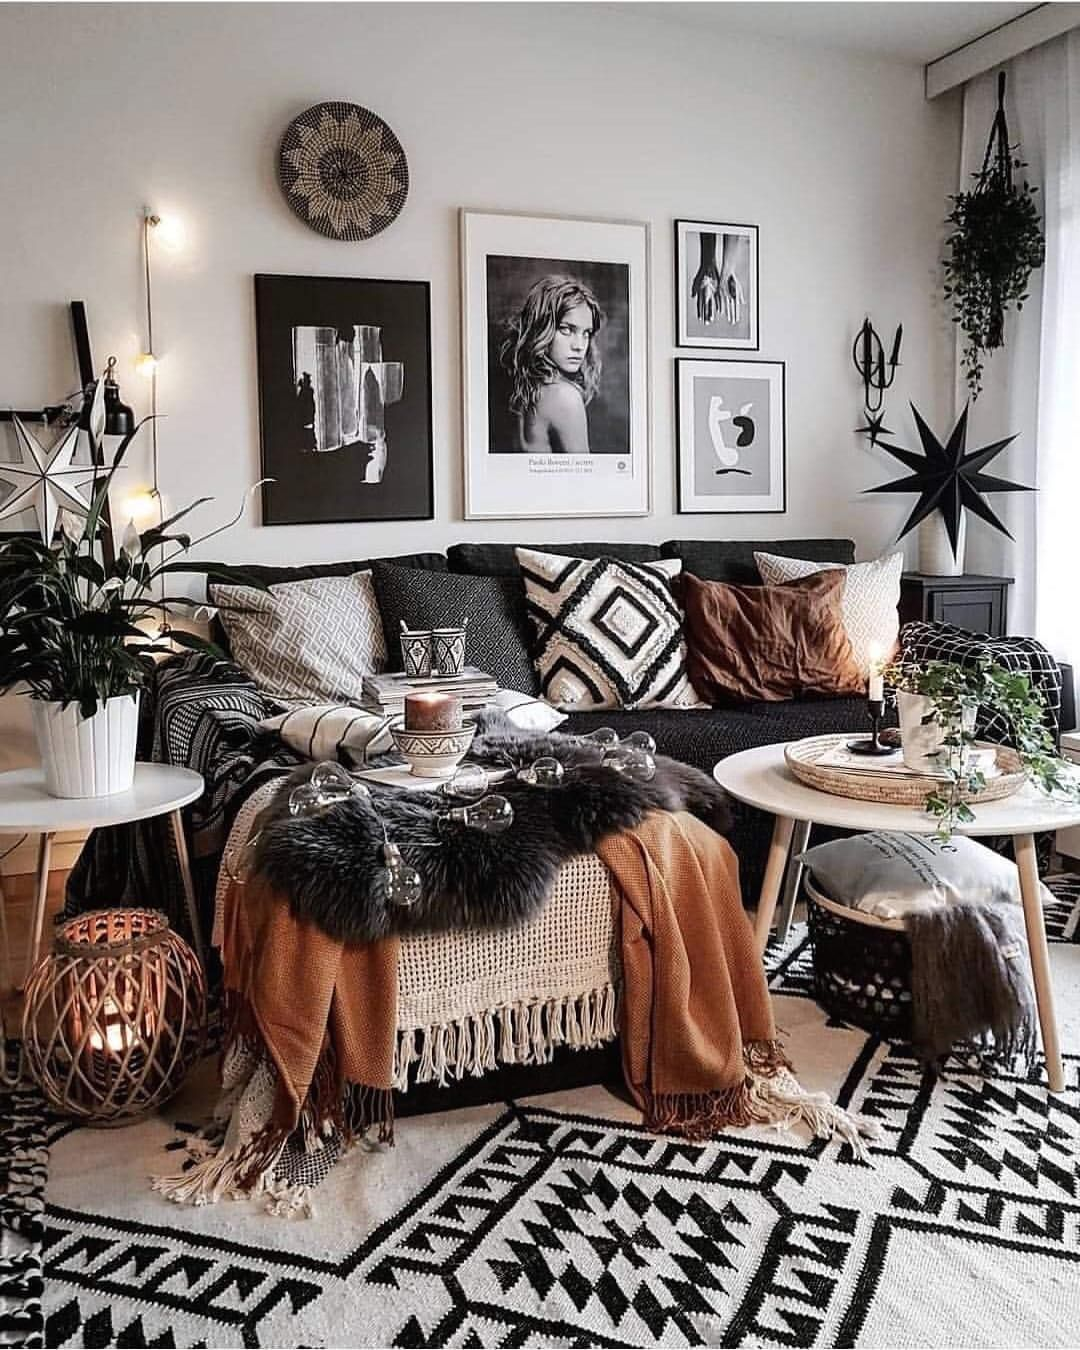 Modern Boho Living Room Ideas Inspiration For A Modern Bohemian Living Room With M Bohemian Style Living Room Living Room Decor Modern Living Room Inspiration